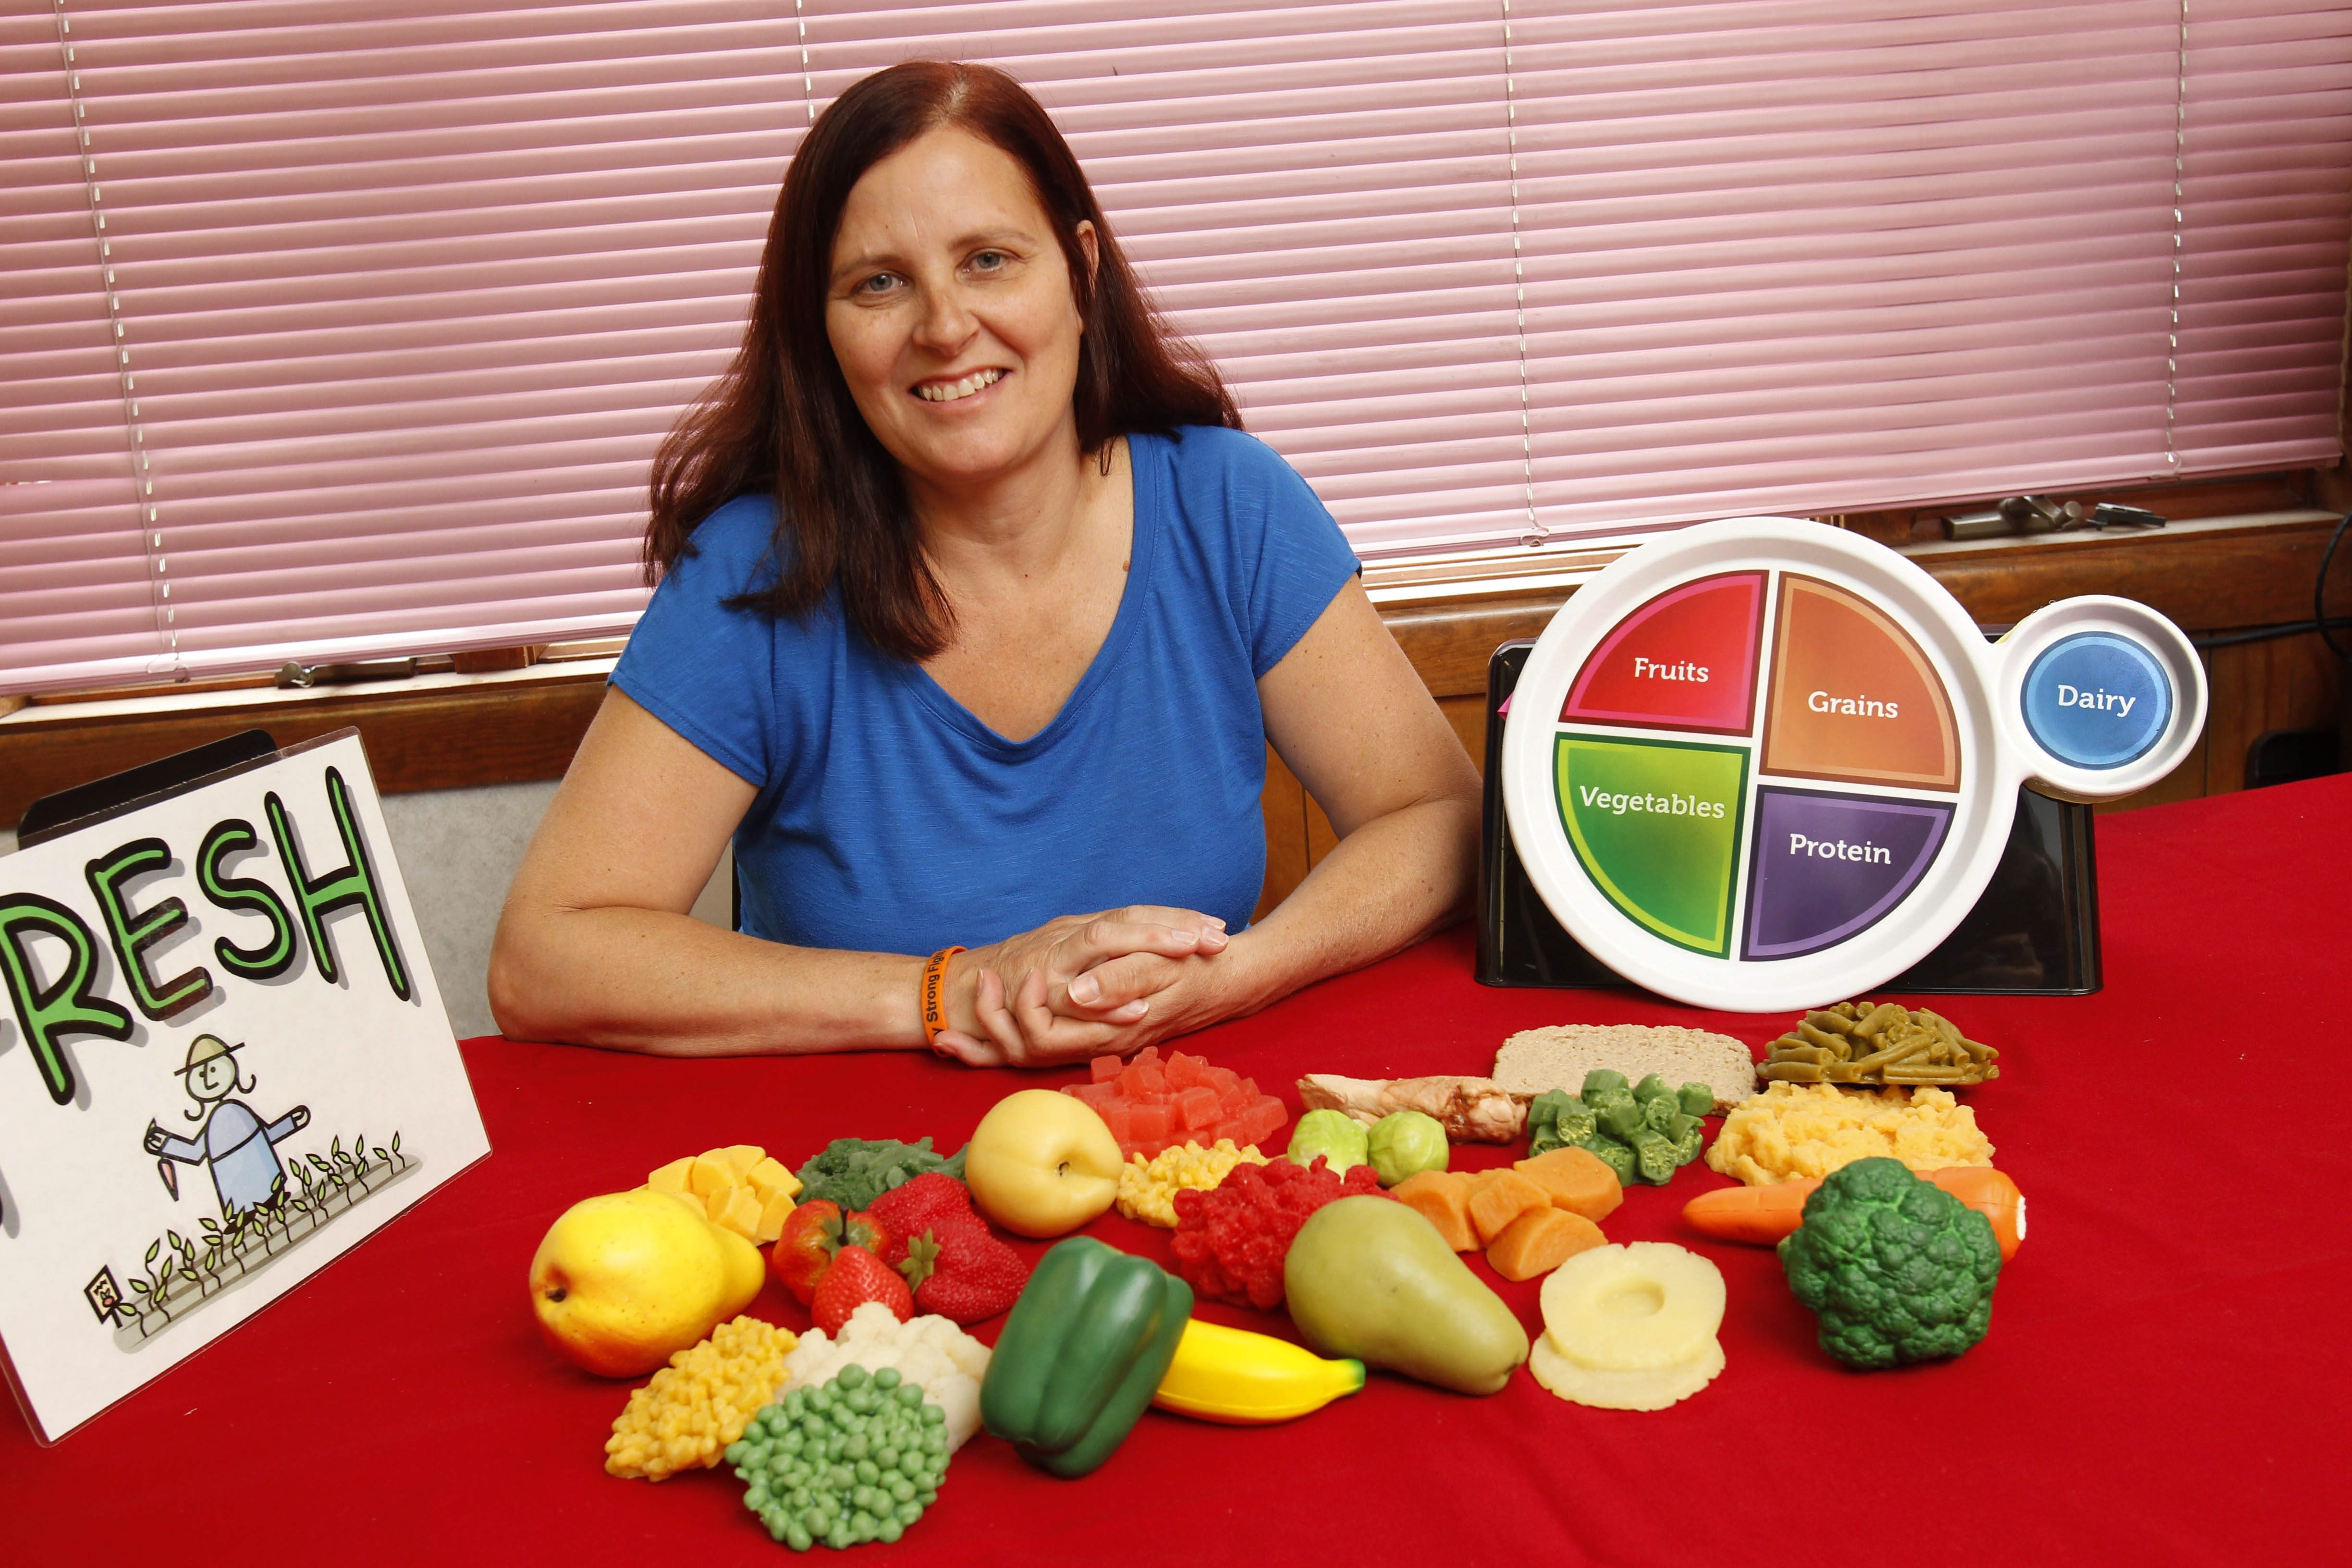 Nutrition educator Sandra Barlow of Cornell Cooperative Extension of Erie County likes lots of fruit and vegetables, lean meat, fish, beans and salads.